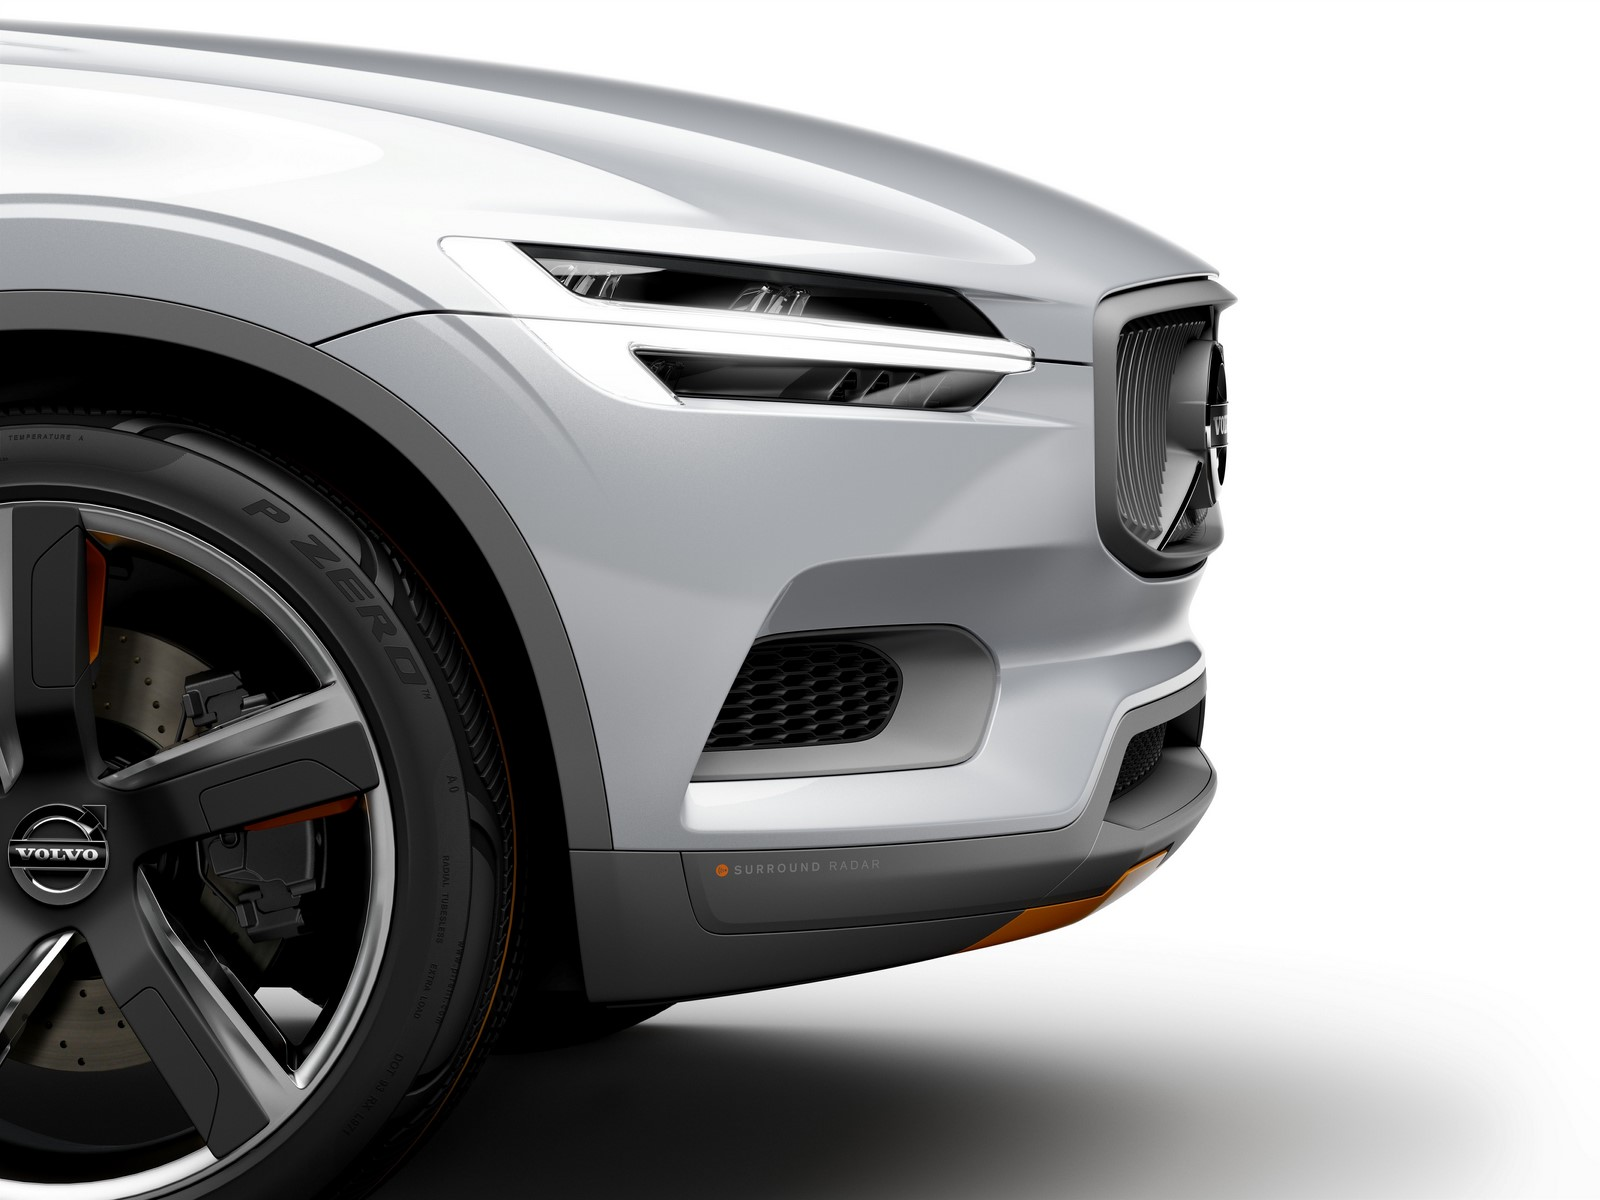 2017 Volvo XC Coupe Concept photo - 4